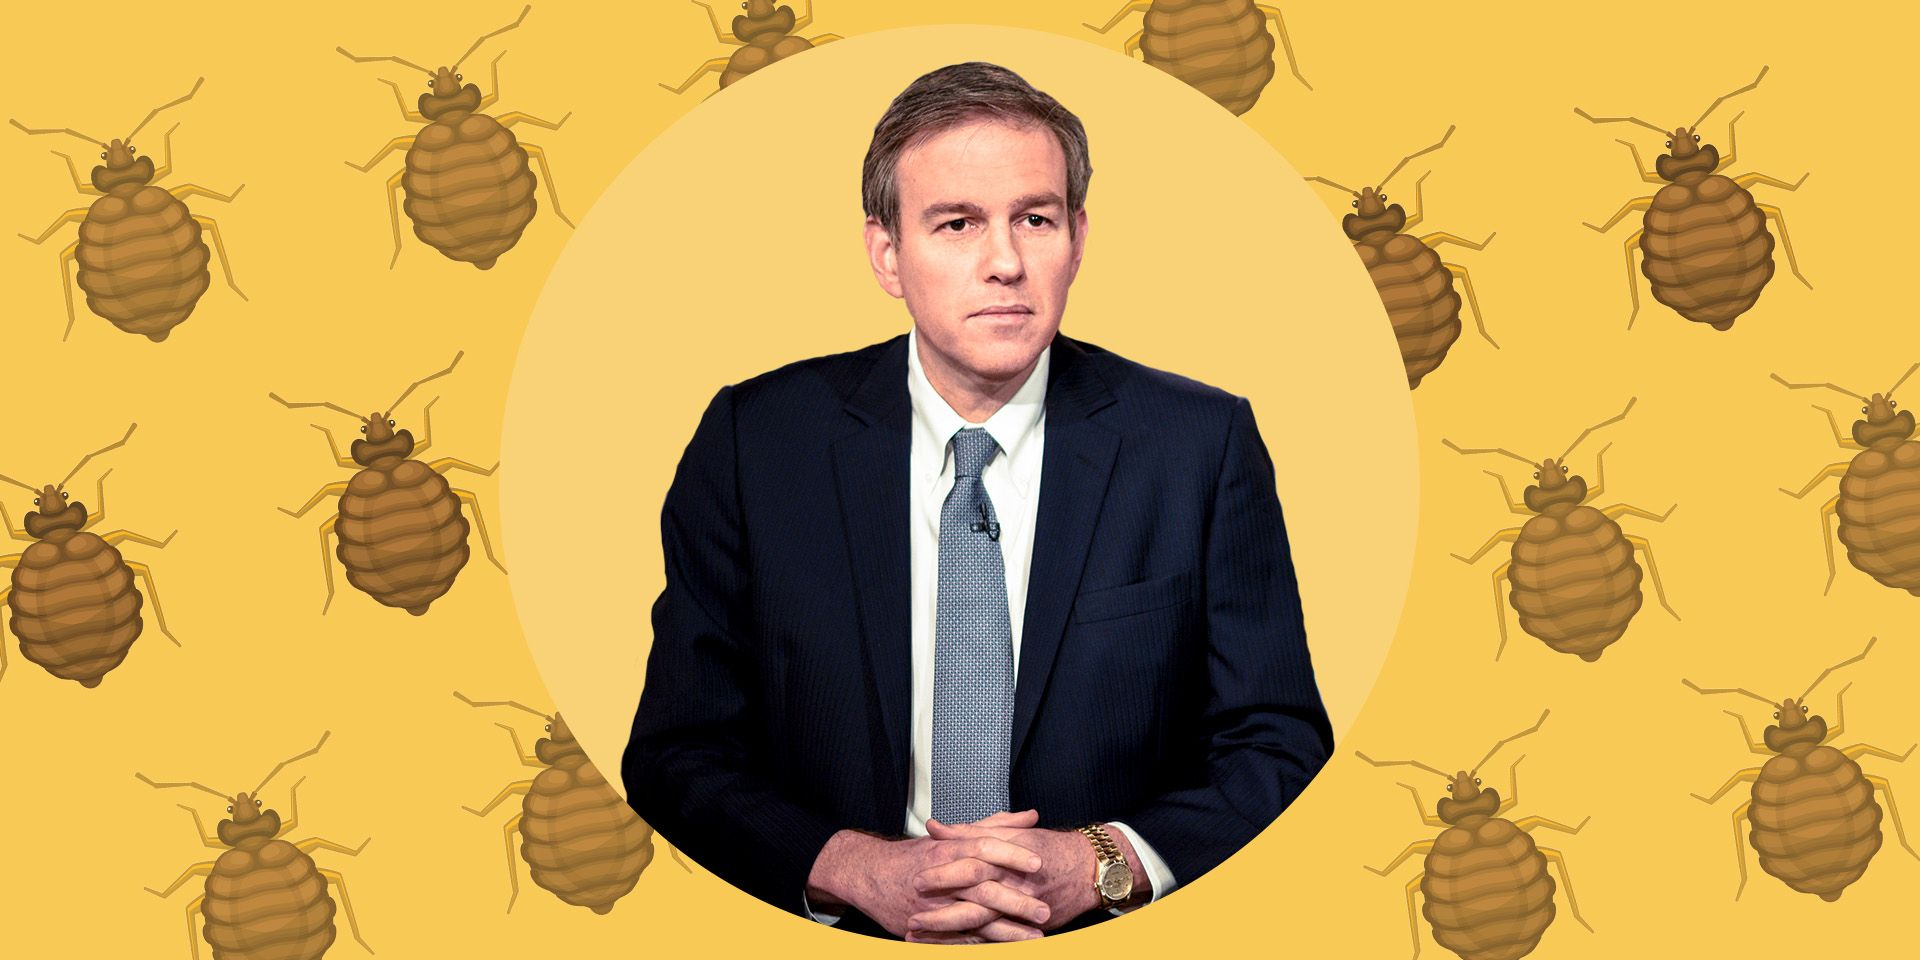 I Called Bret Stephens a Bedbug. Then He Tried to Squelch My Freedom of Speech. What a Day.